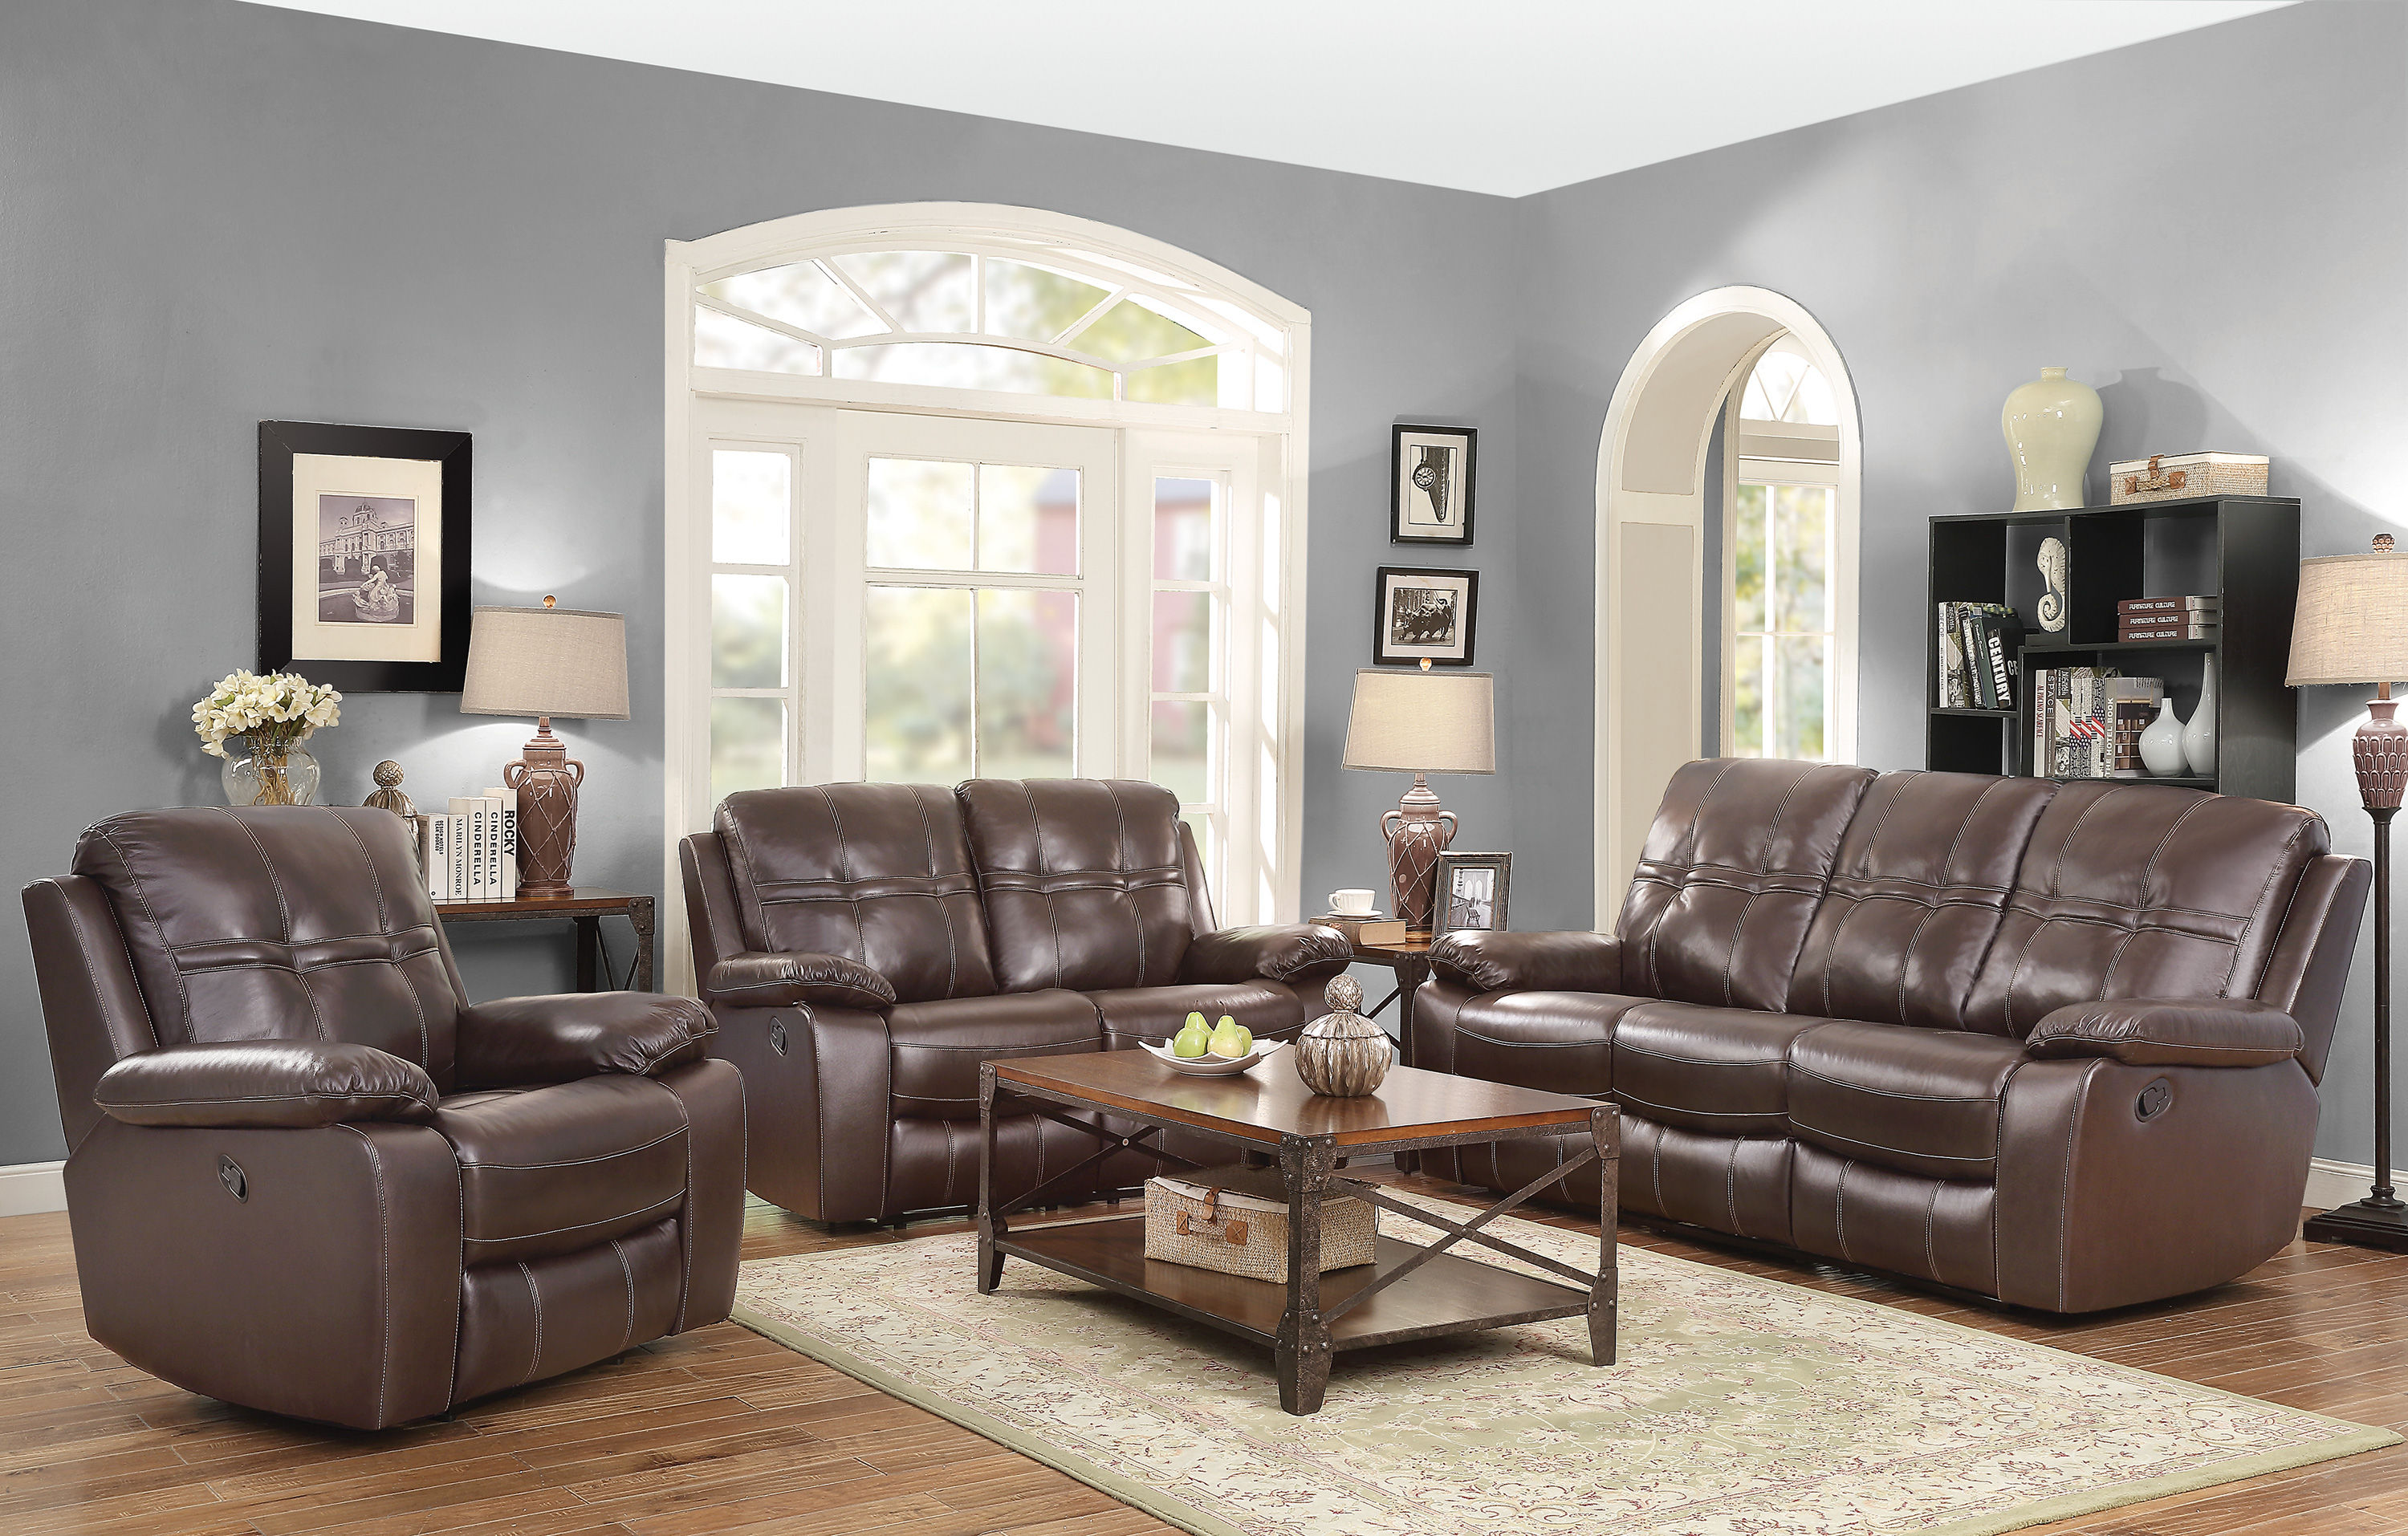 holloway dark brown grain leather living room set the classy home. Black Bedroom Furniture Sets. Home Design Ideas